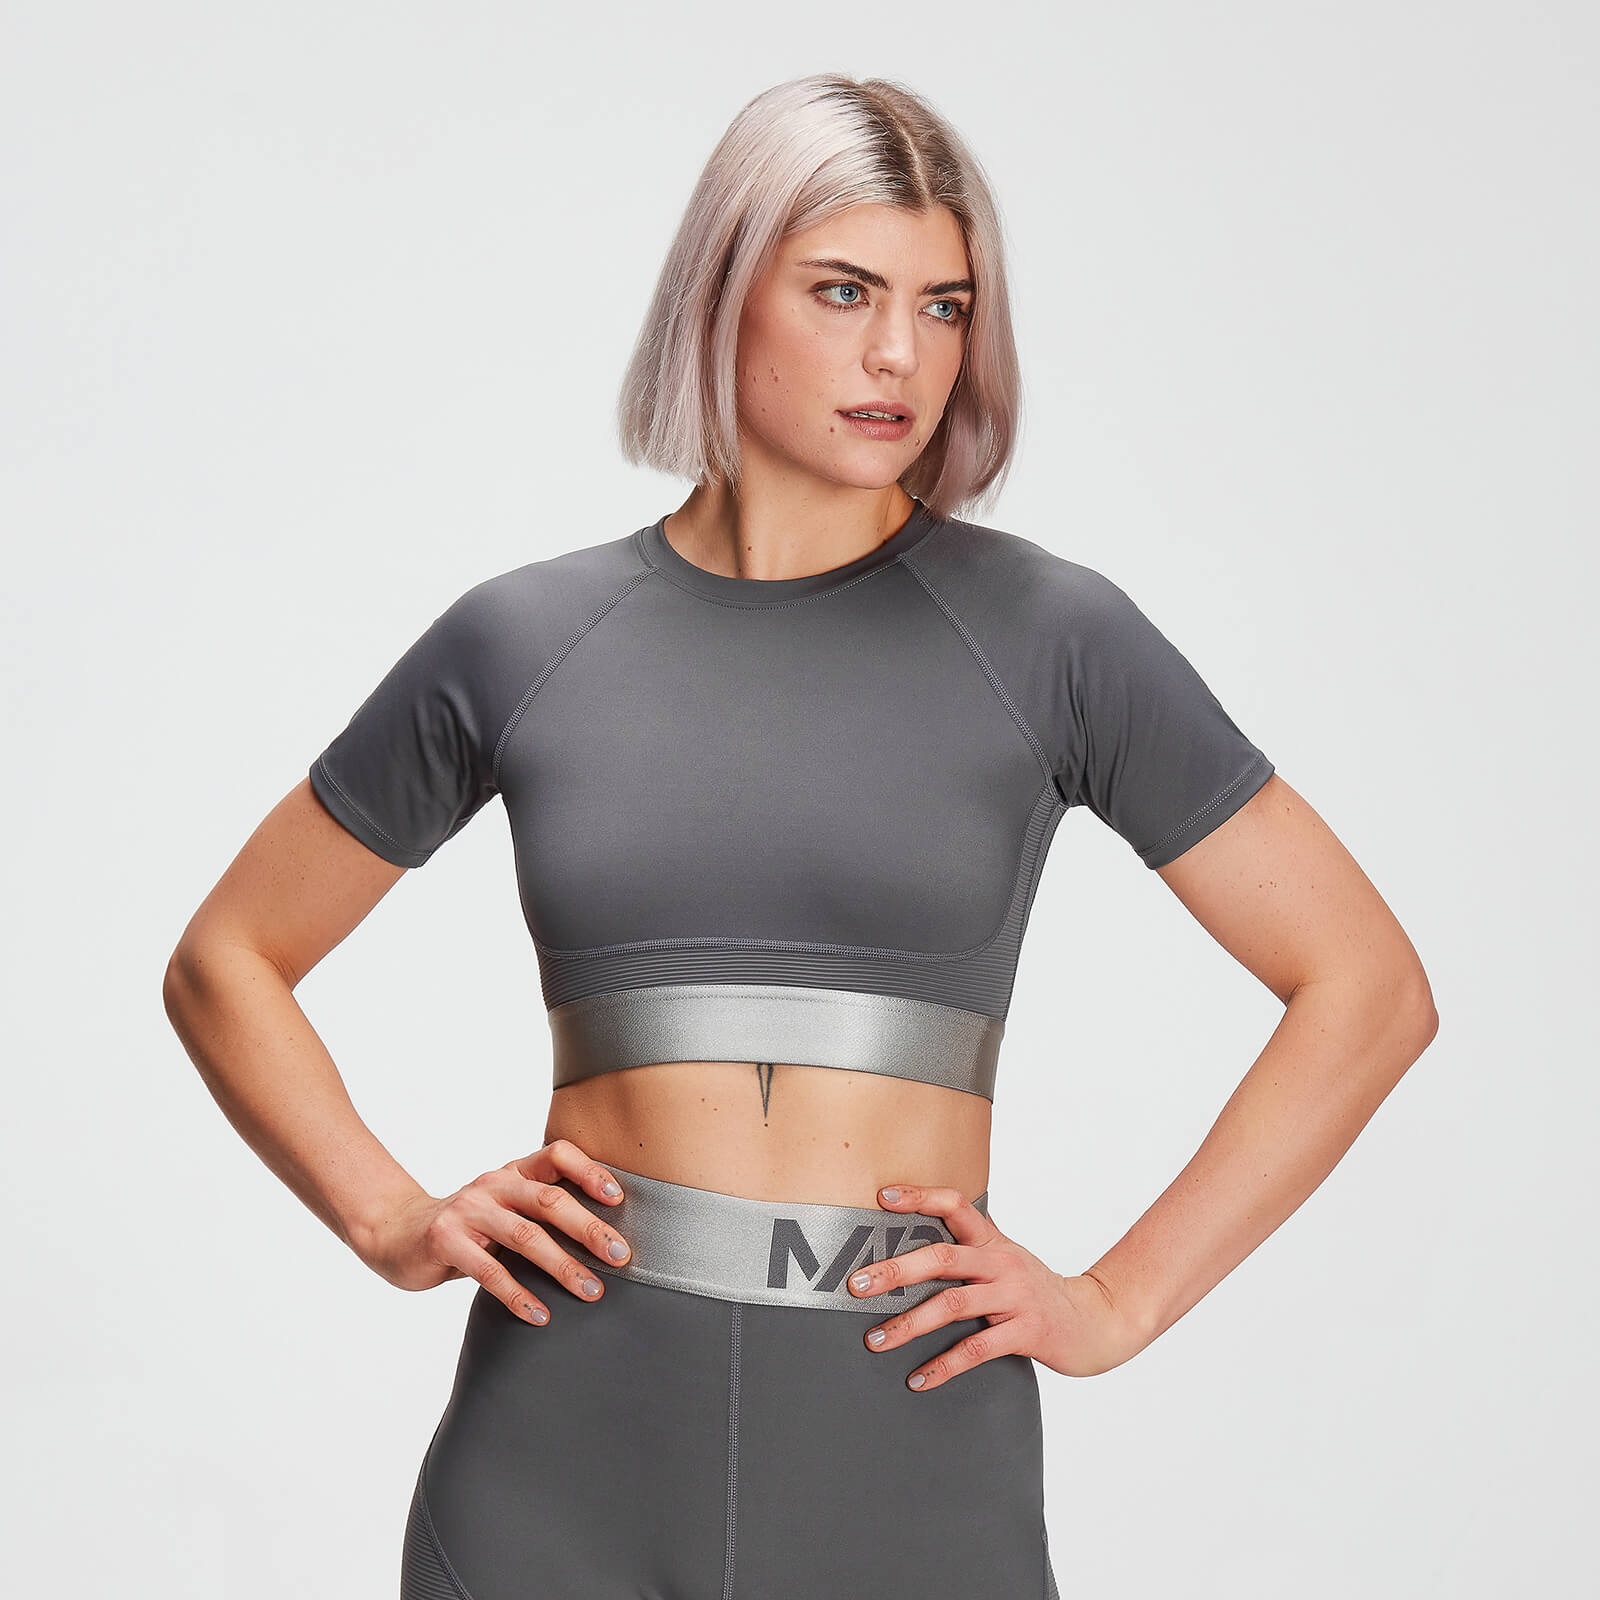 Crop top texturé MP Adapt pour femmes – Carbone - XXS